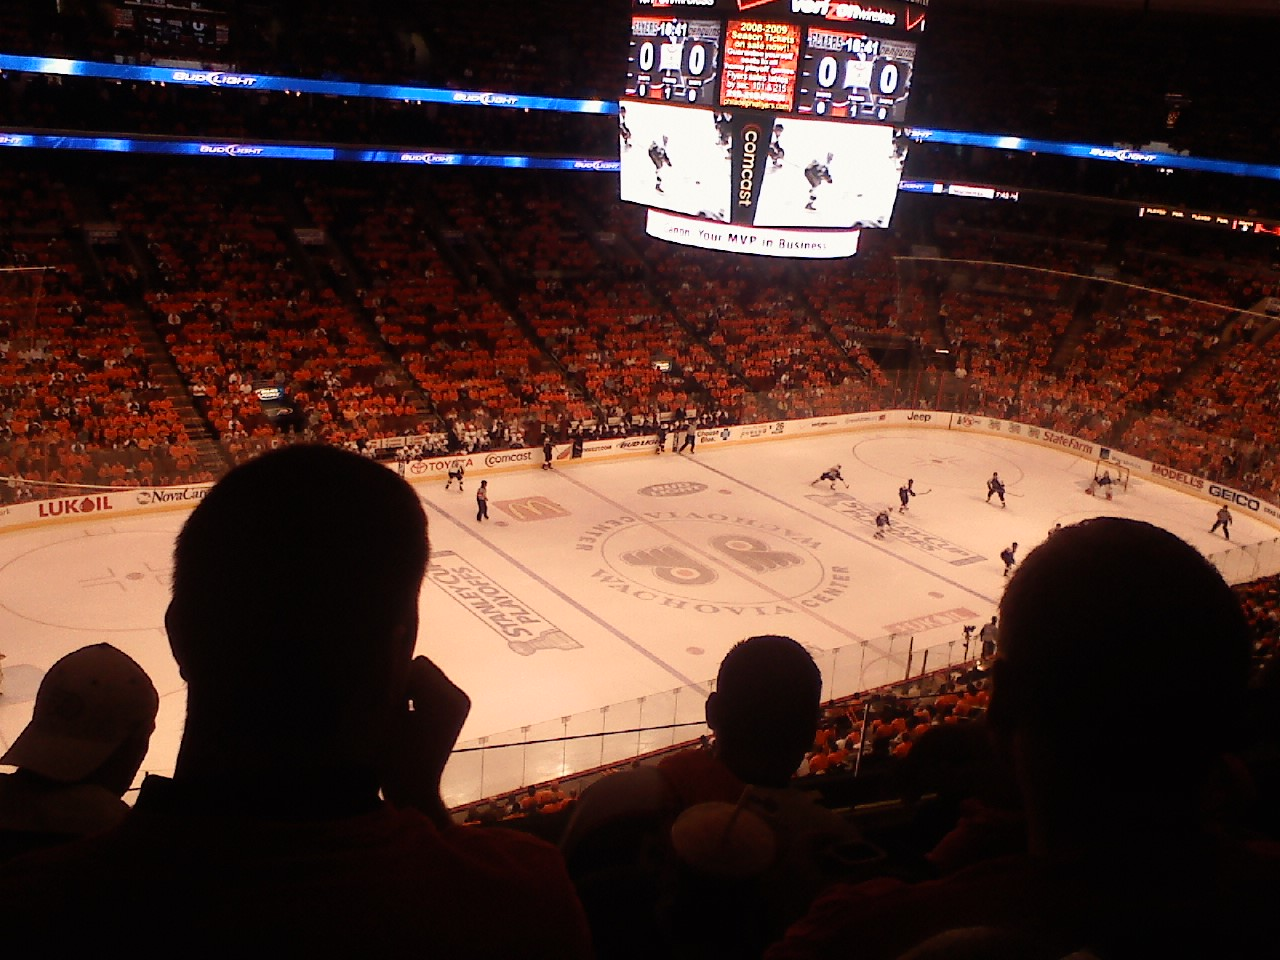 Philadelphia Flyers Seat View for Wells Fargo Center Section 210A, Row 4, Seat 4